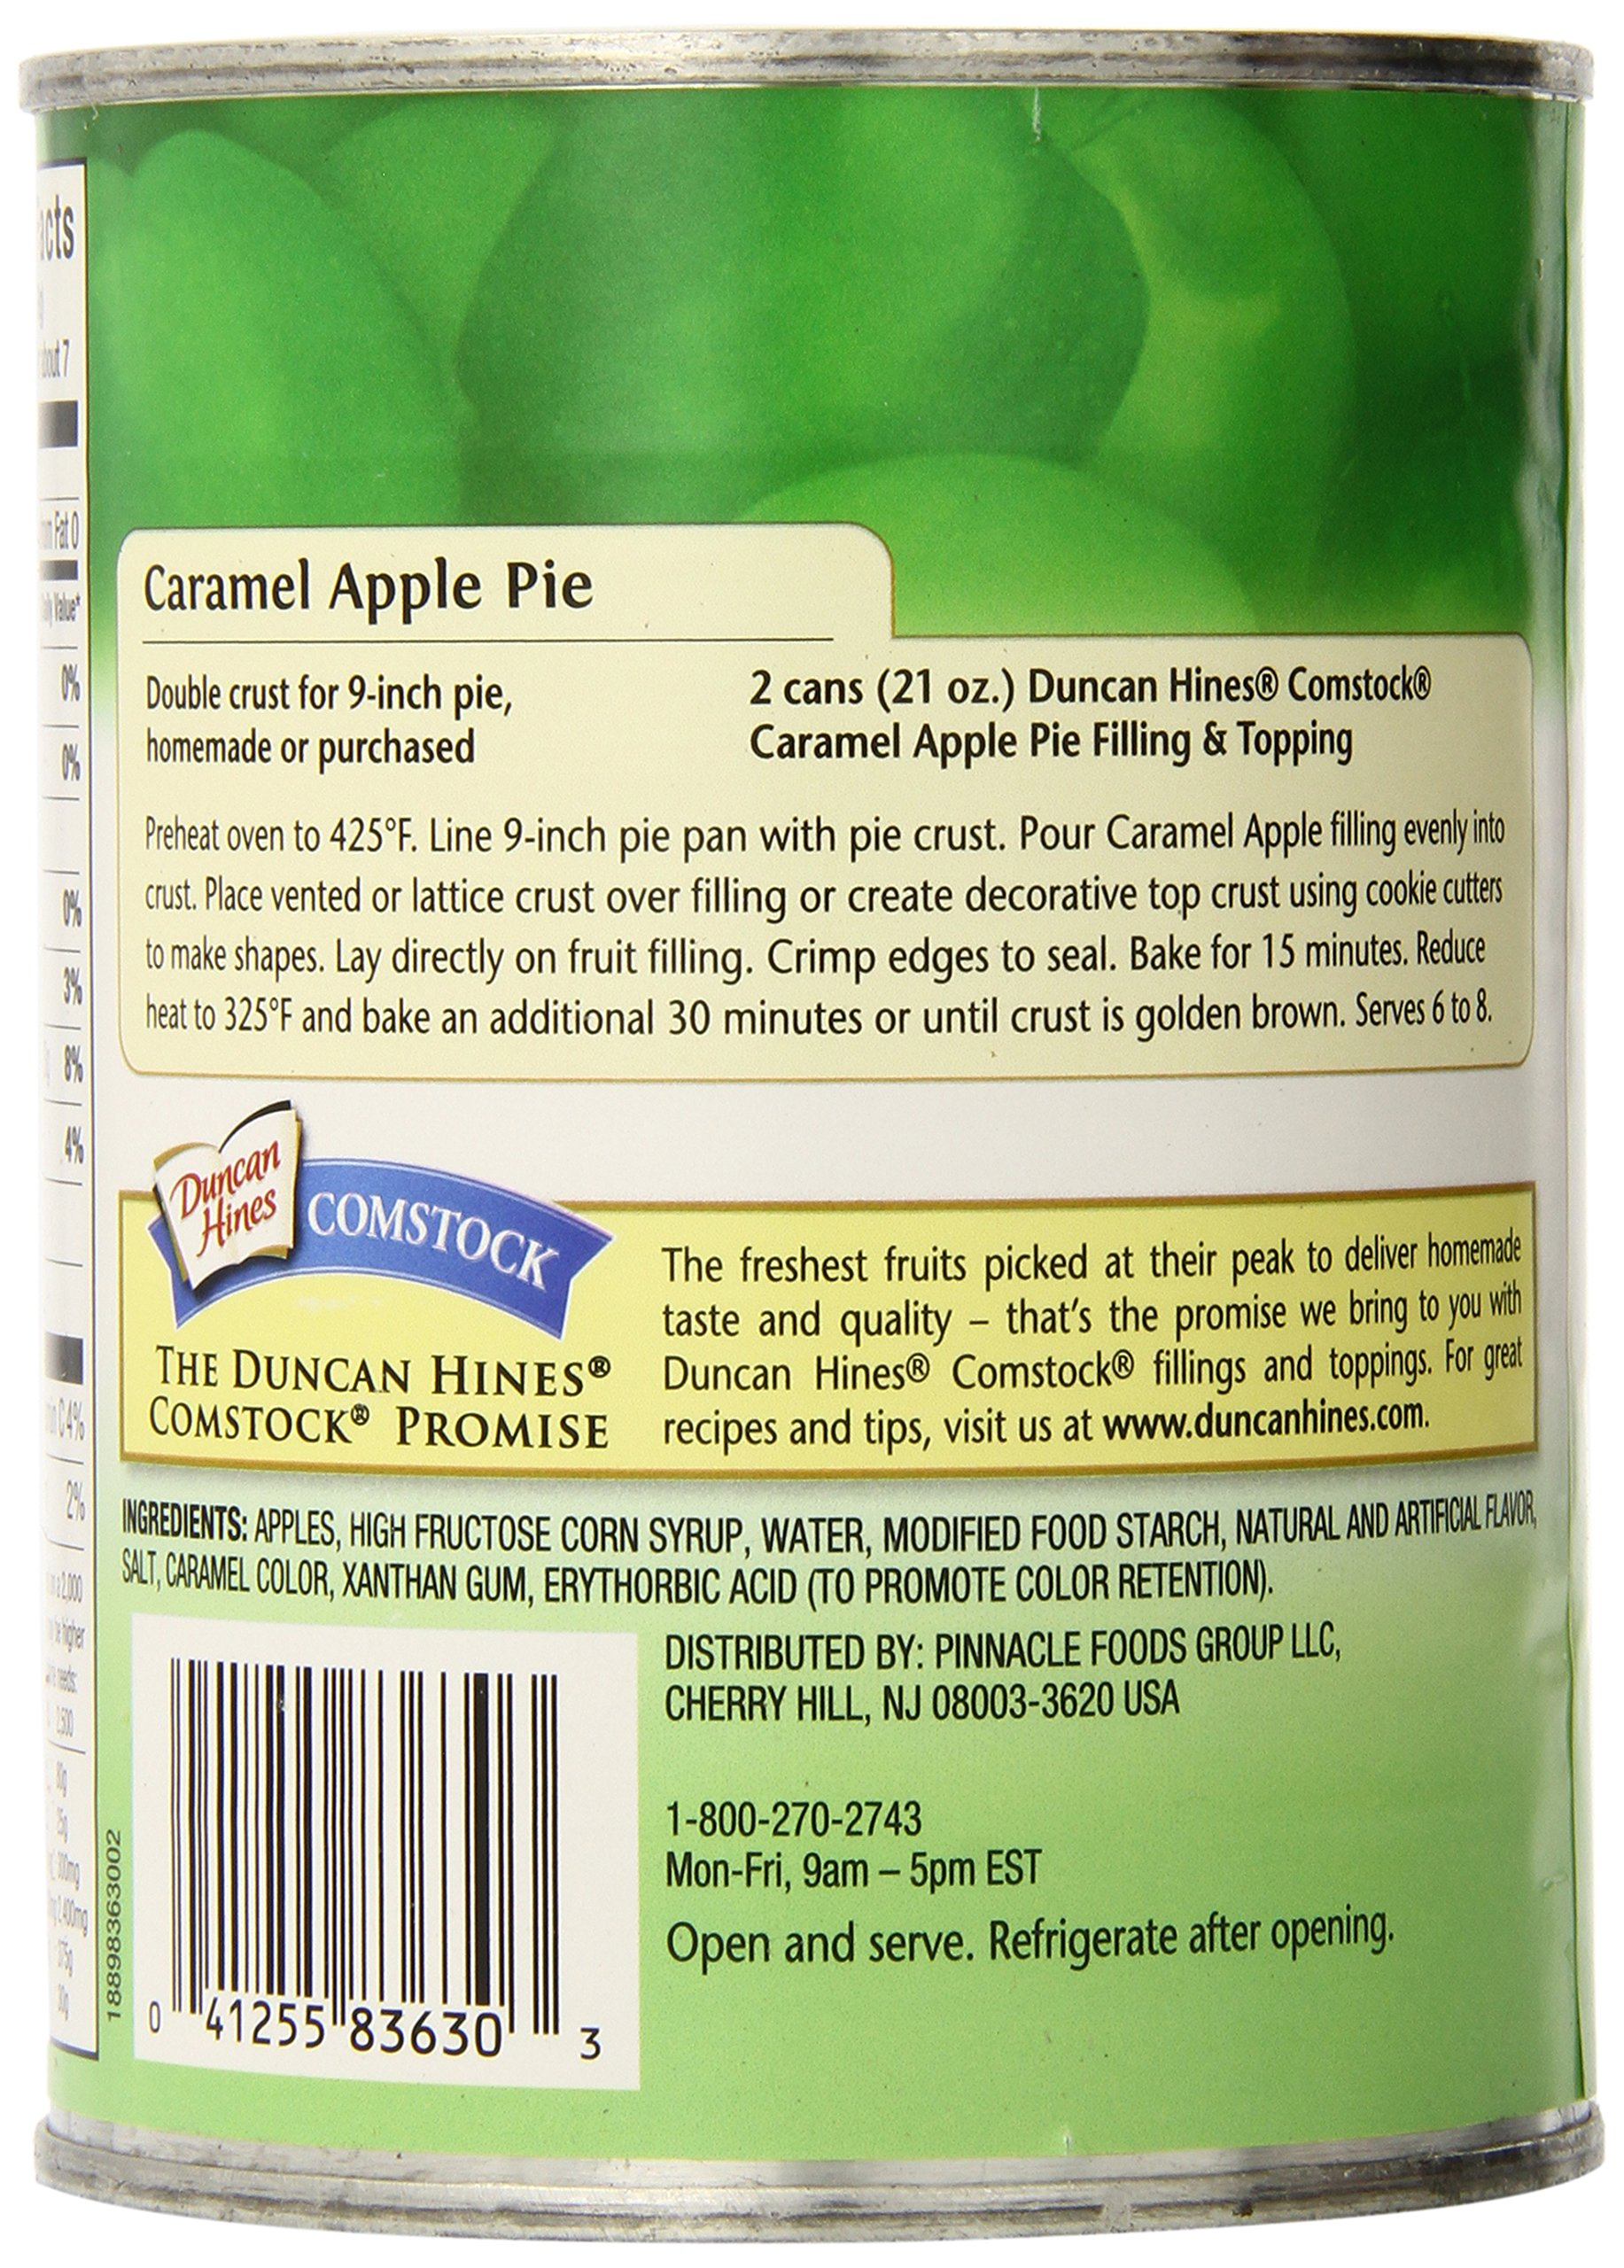 Comstock Original Pie Filling & Topping, Caramel Apple, 21 Ounce (Pack of 12) by Comstock (Image #4)